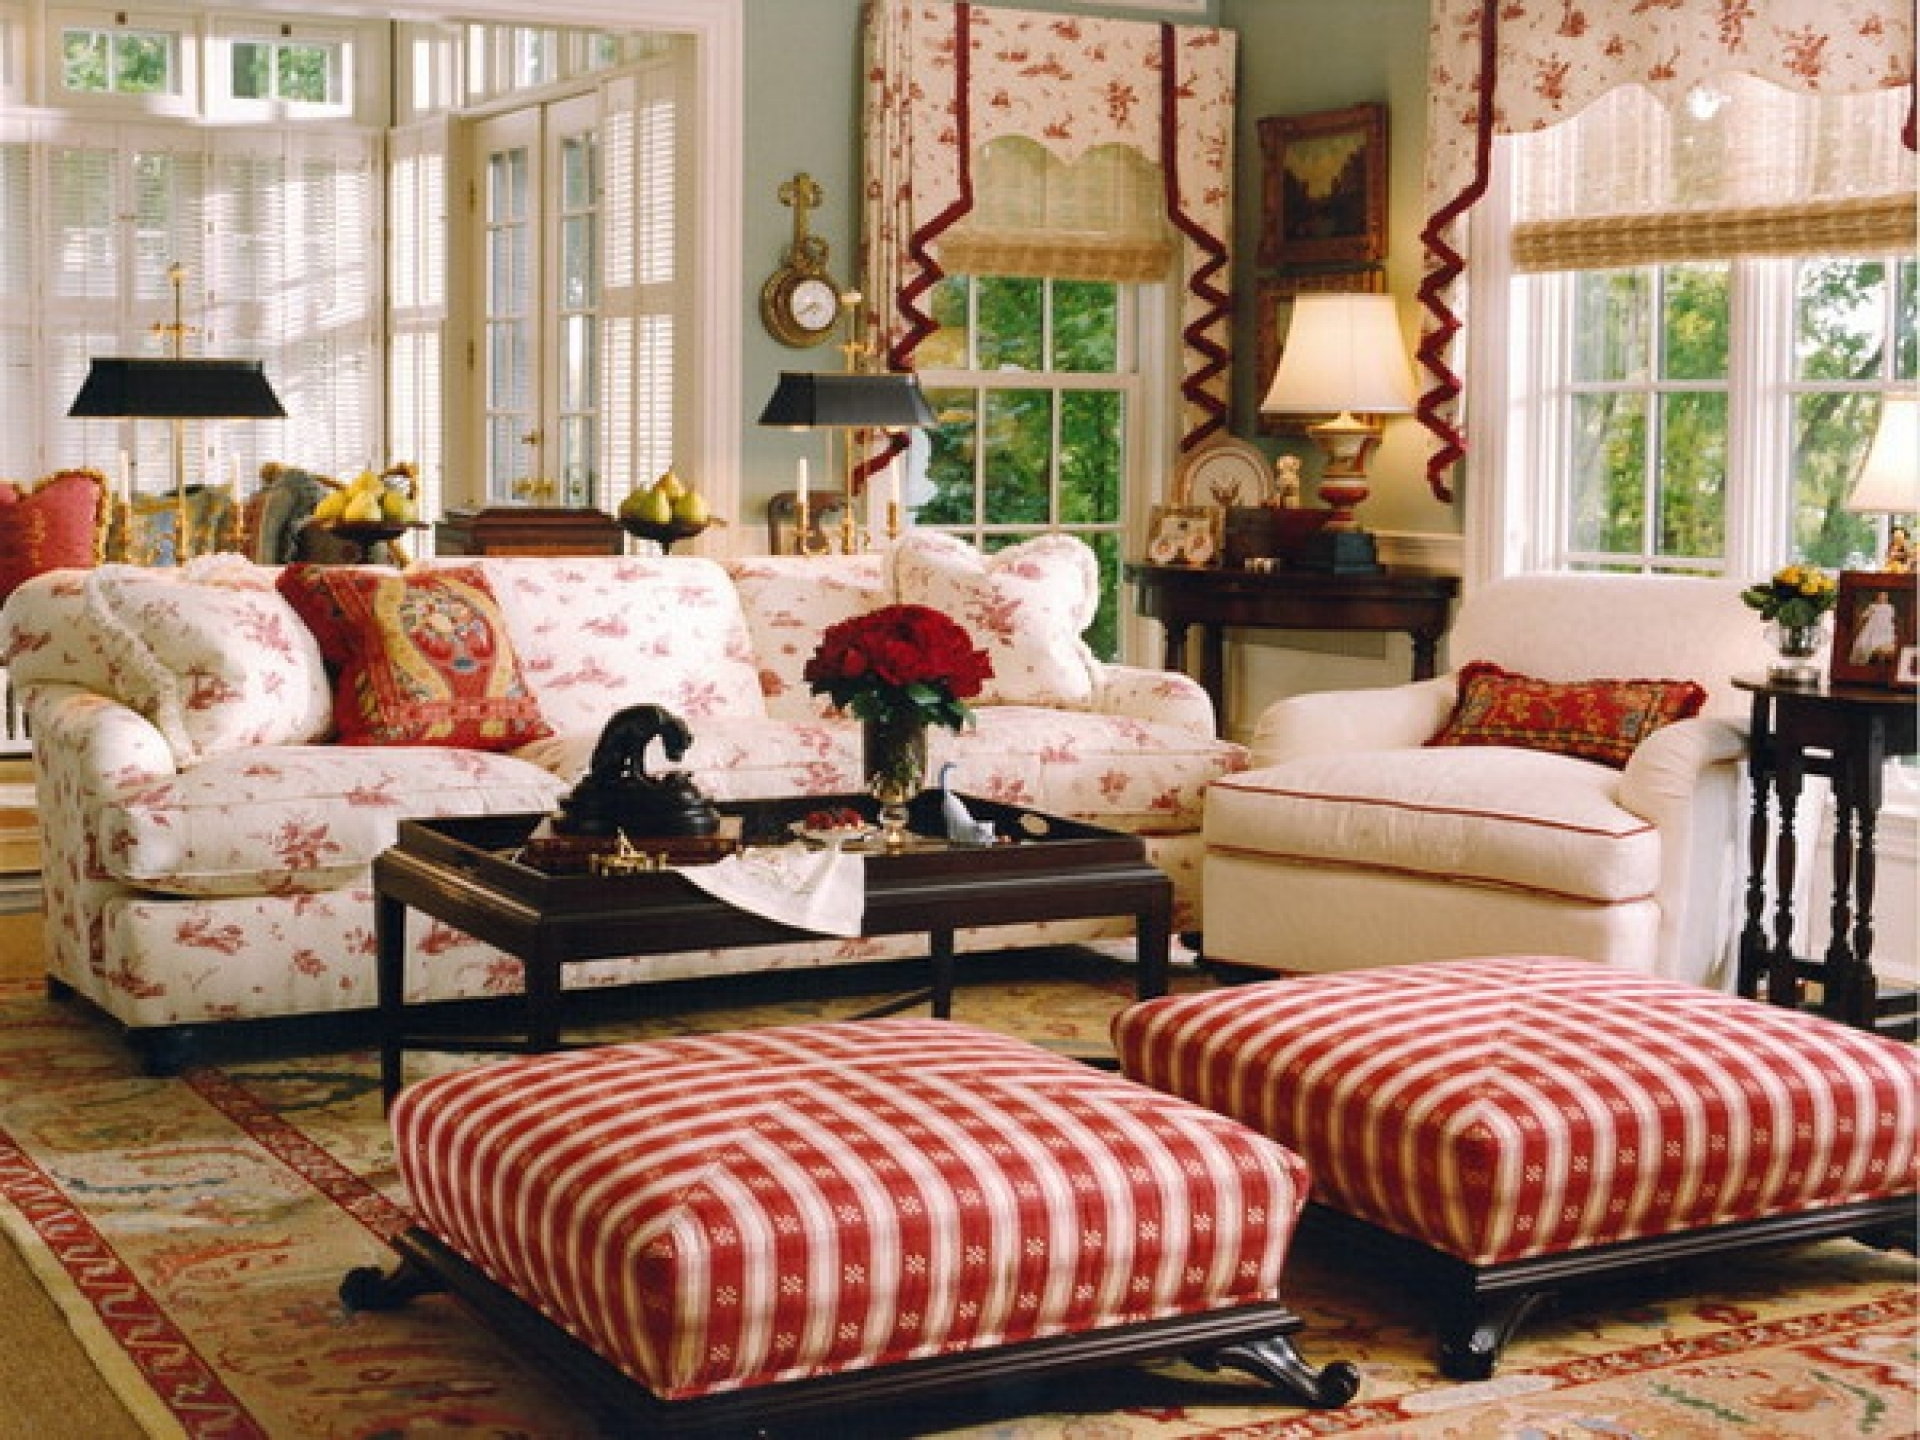 Fashionable Striped Sofas And Chairs Inside Attractive English Country Living Room Ideas Square Red Striped (View 5 of 15)